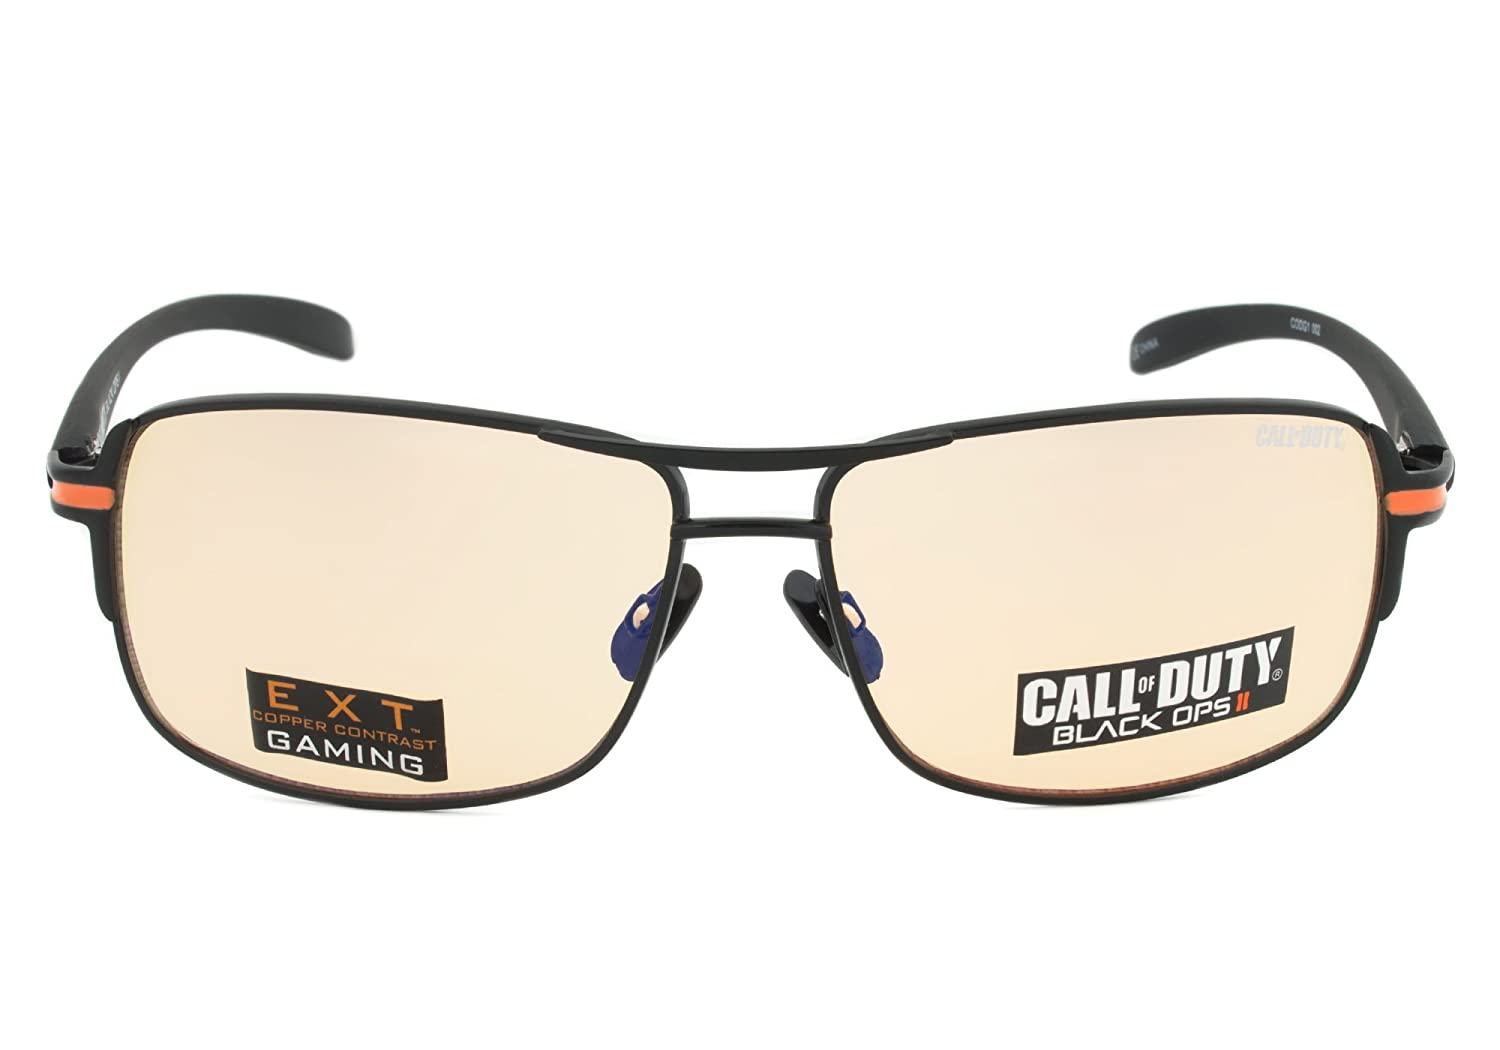 Call of Duty Black Ops Rectangular Sunglasses, Black CODG1